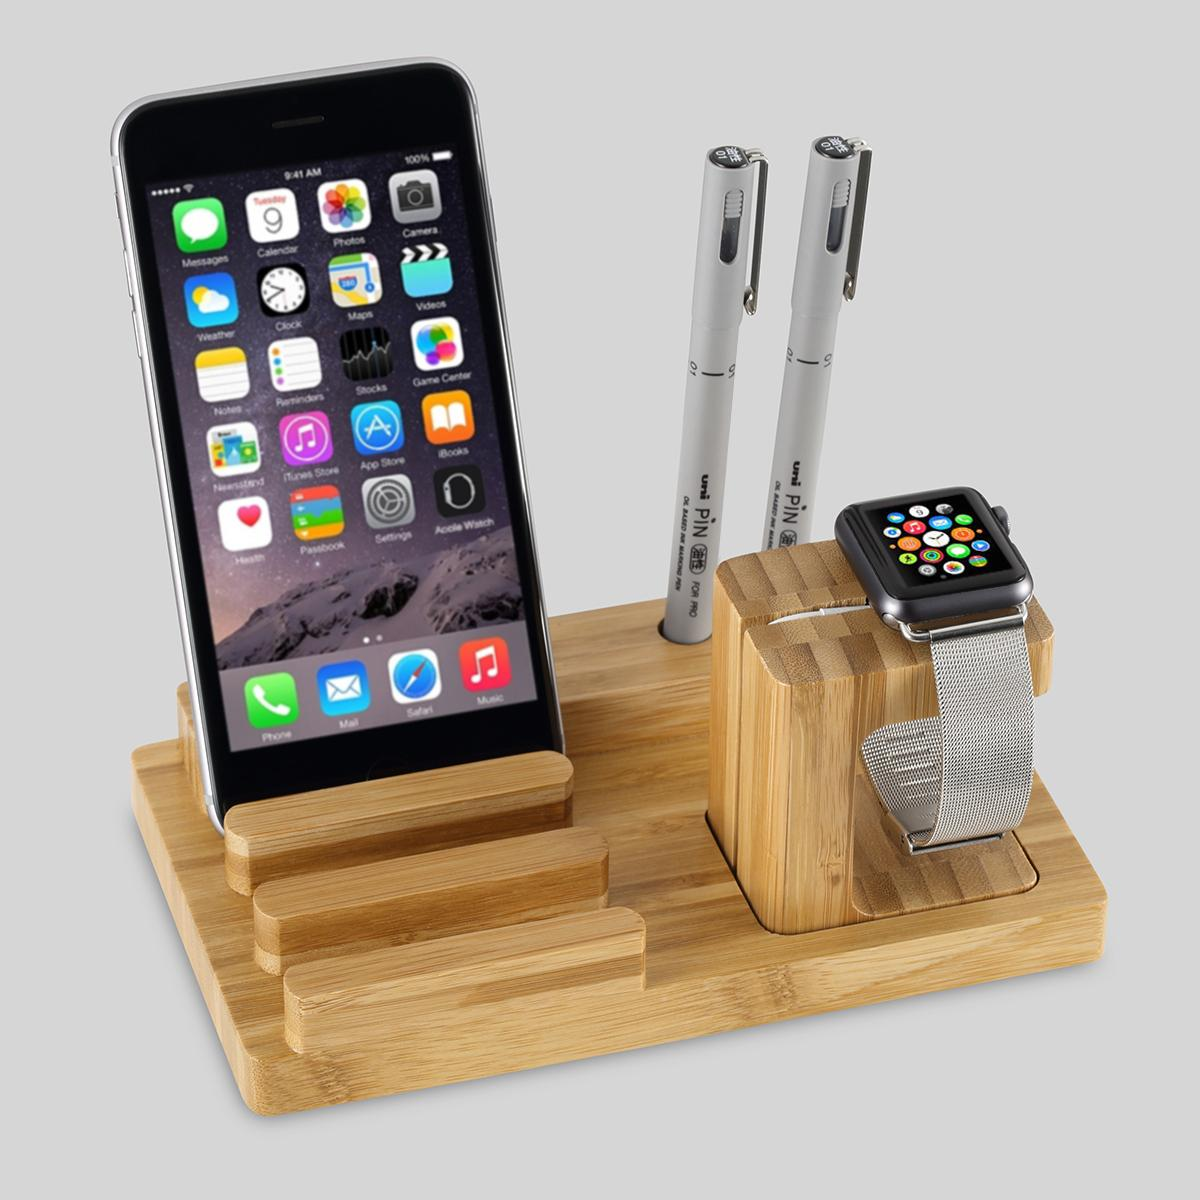 Bamboo Wood Mobile Phone Holder Bracket Cell Phones Mount Tripod Mount Adapter Stand Audio Visual Companies Av Hire From Green Eco Life 6 57